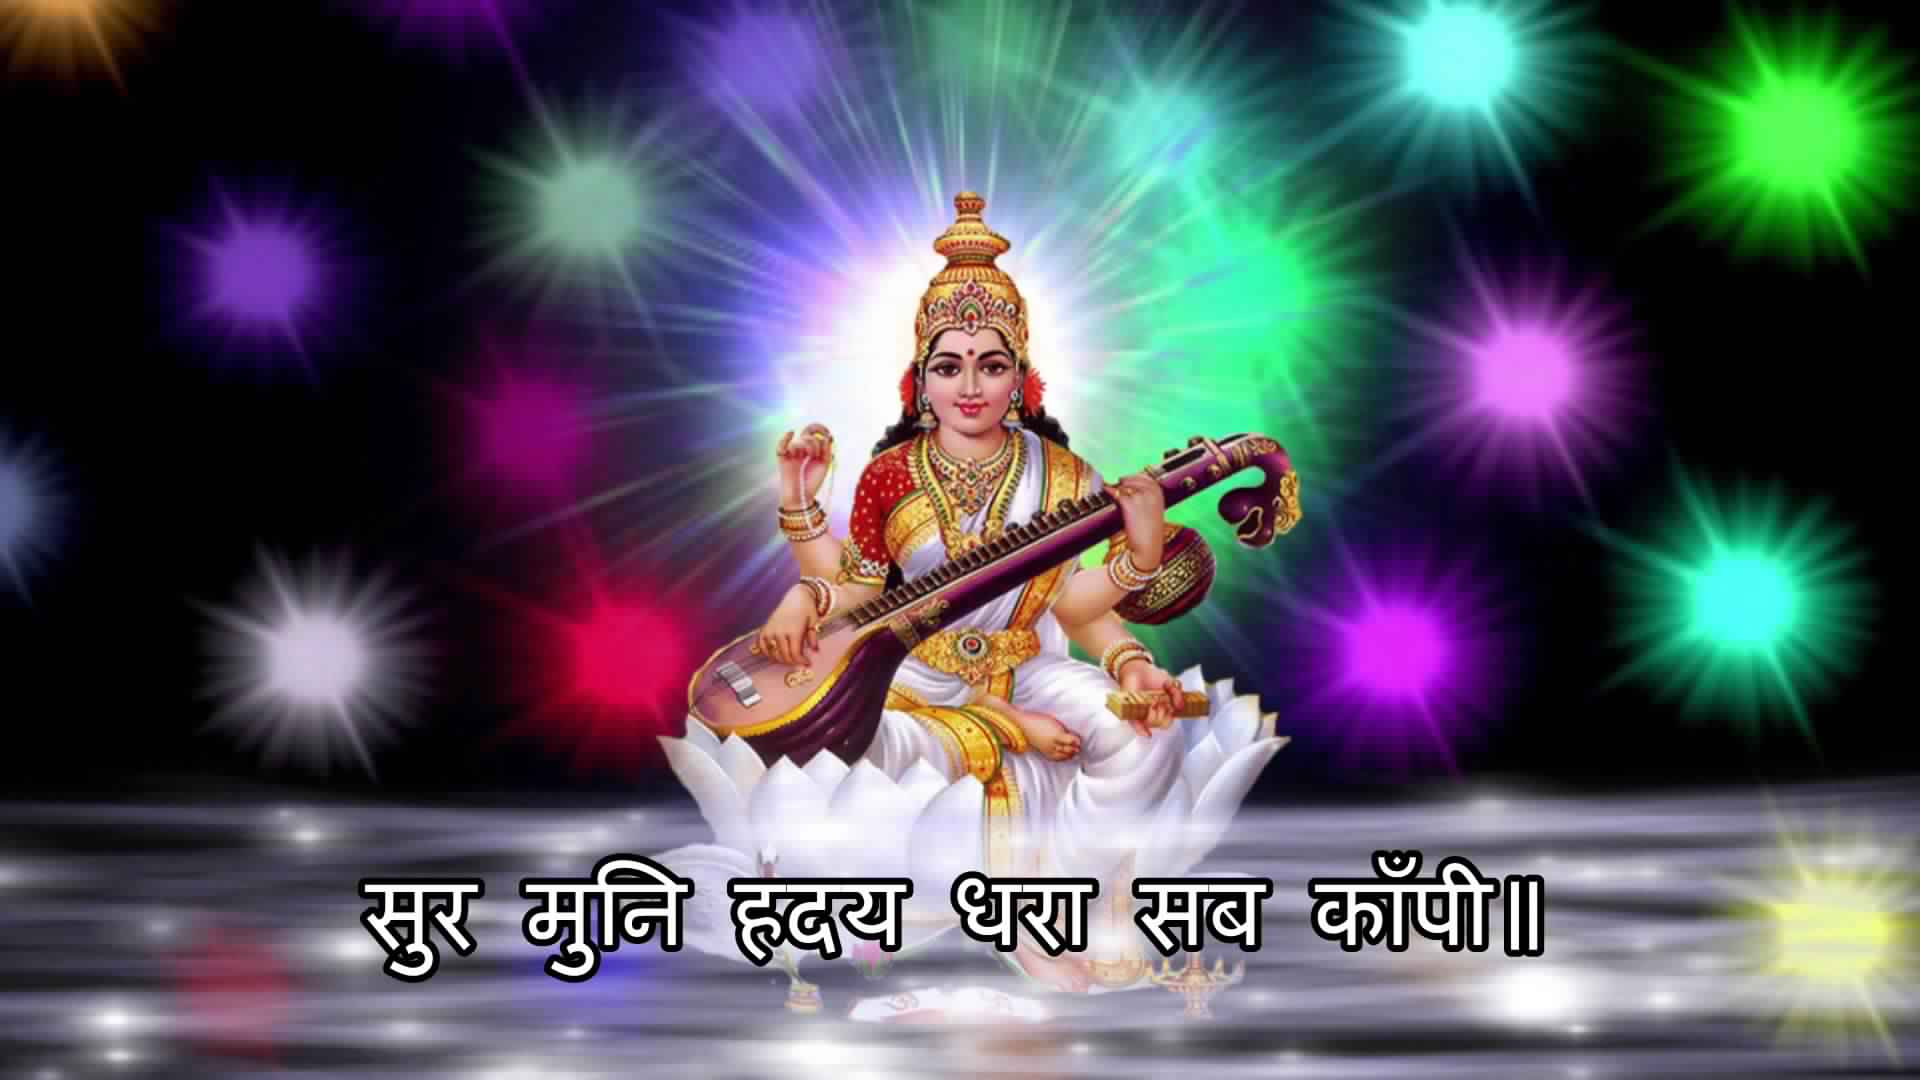 Maa Saraswati Hd Wallpaper 1920×1080